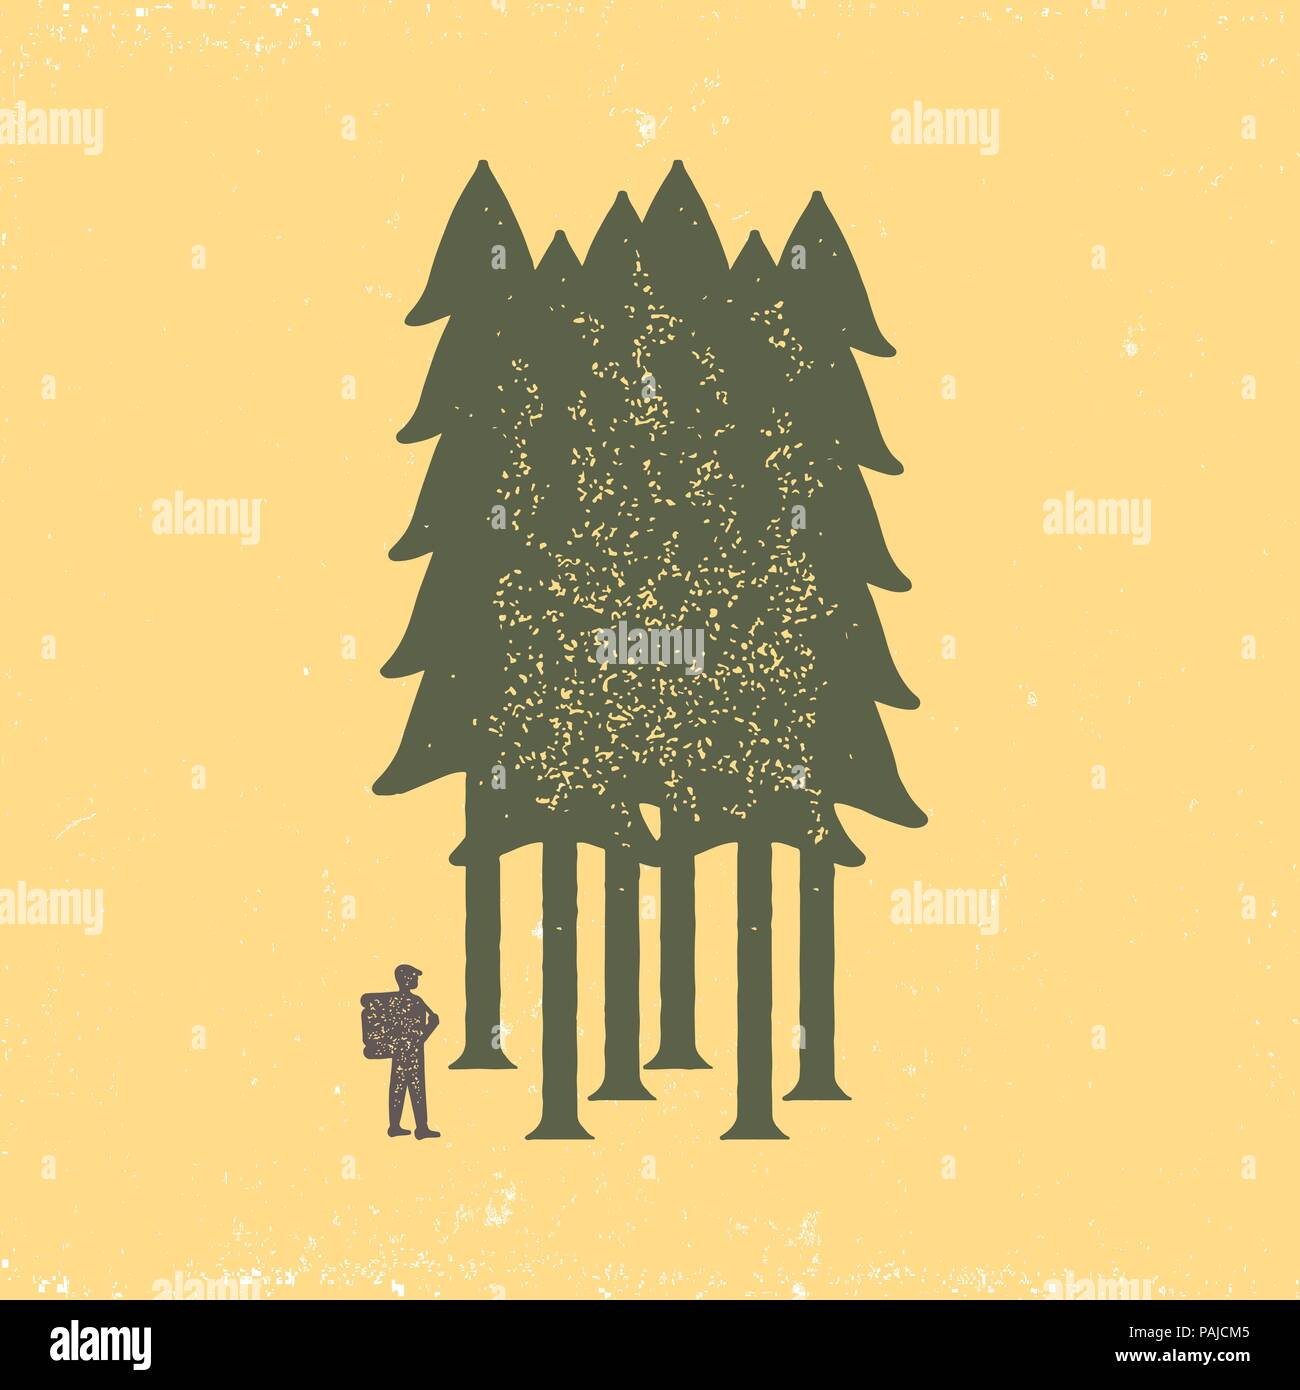 Vintage poster of the tourist-traveler in the forest on a yellow background. Grunge badge, typogrphic symbol suitable for T-shirts or print. Isolated  Stock Vector